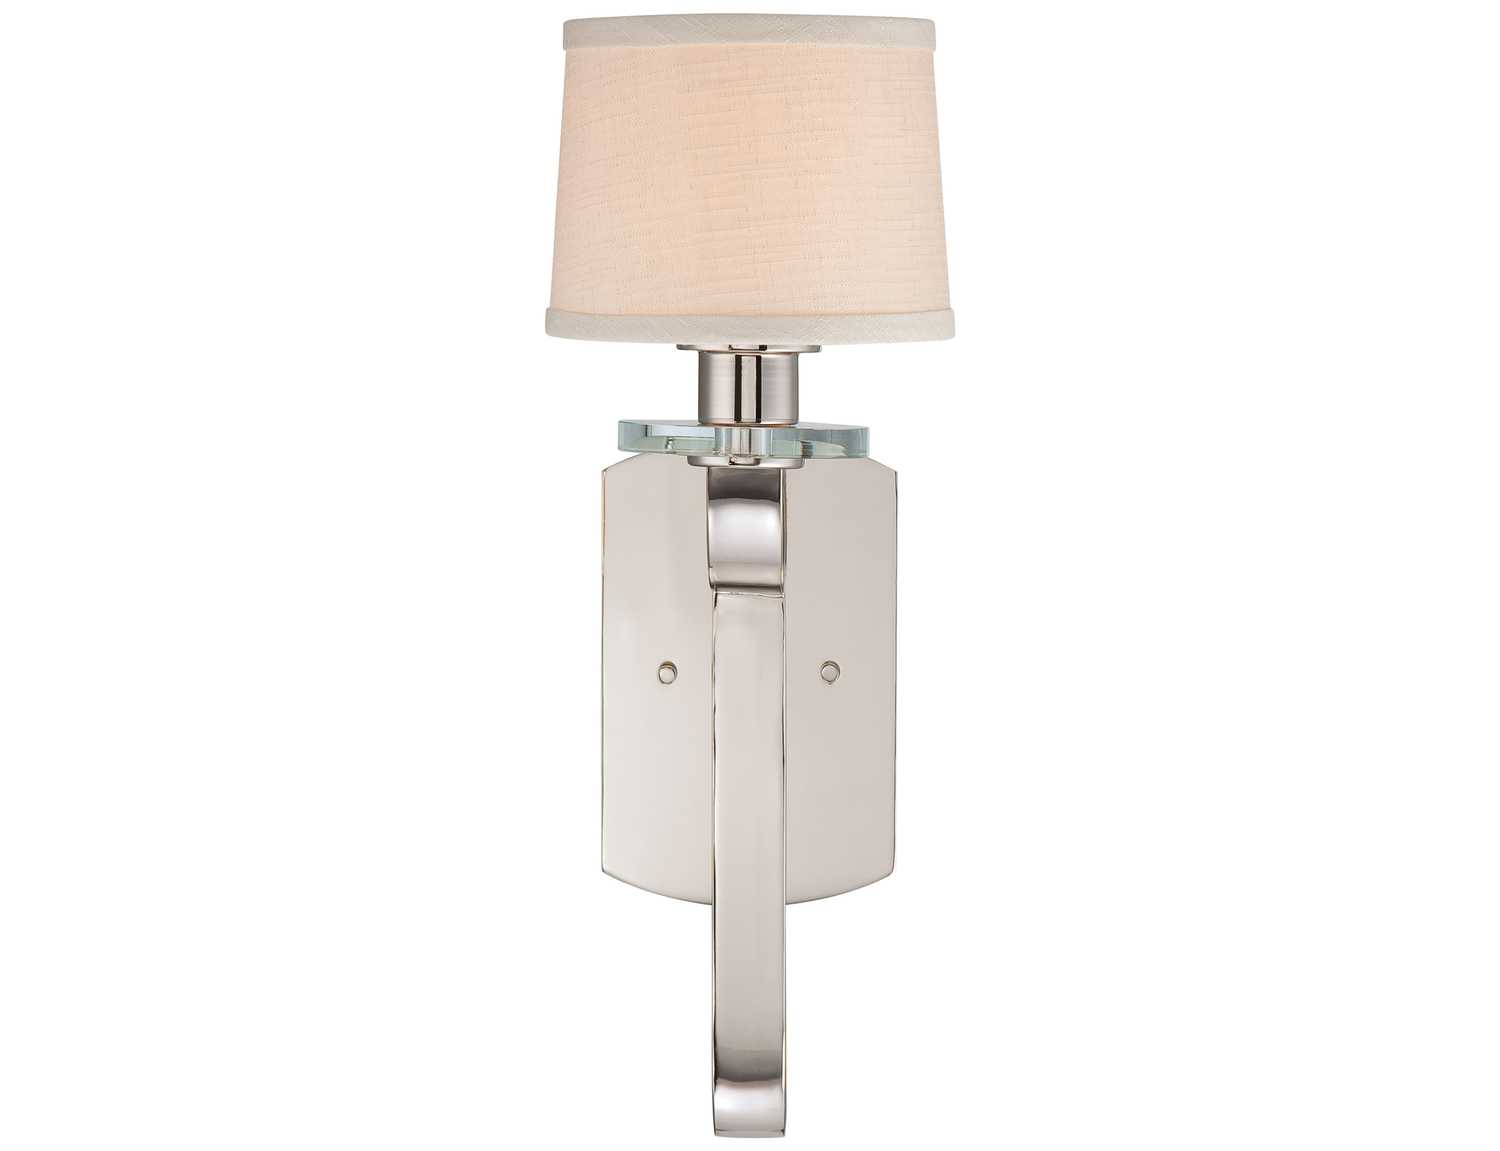 Quoizel Uptown Sutton Place Imperial Silver Wall Sconce UPSP8701IS